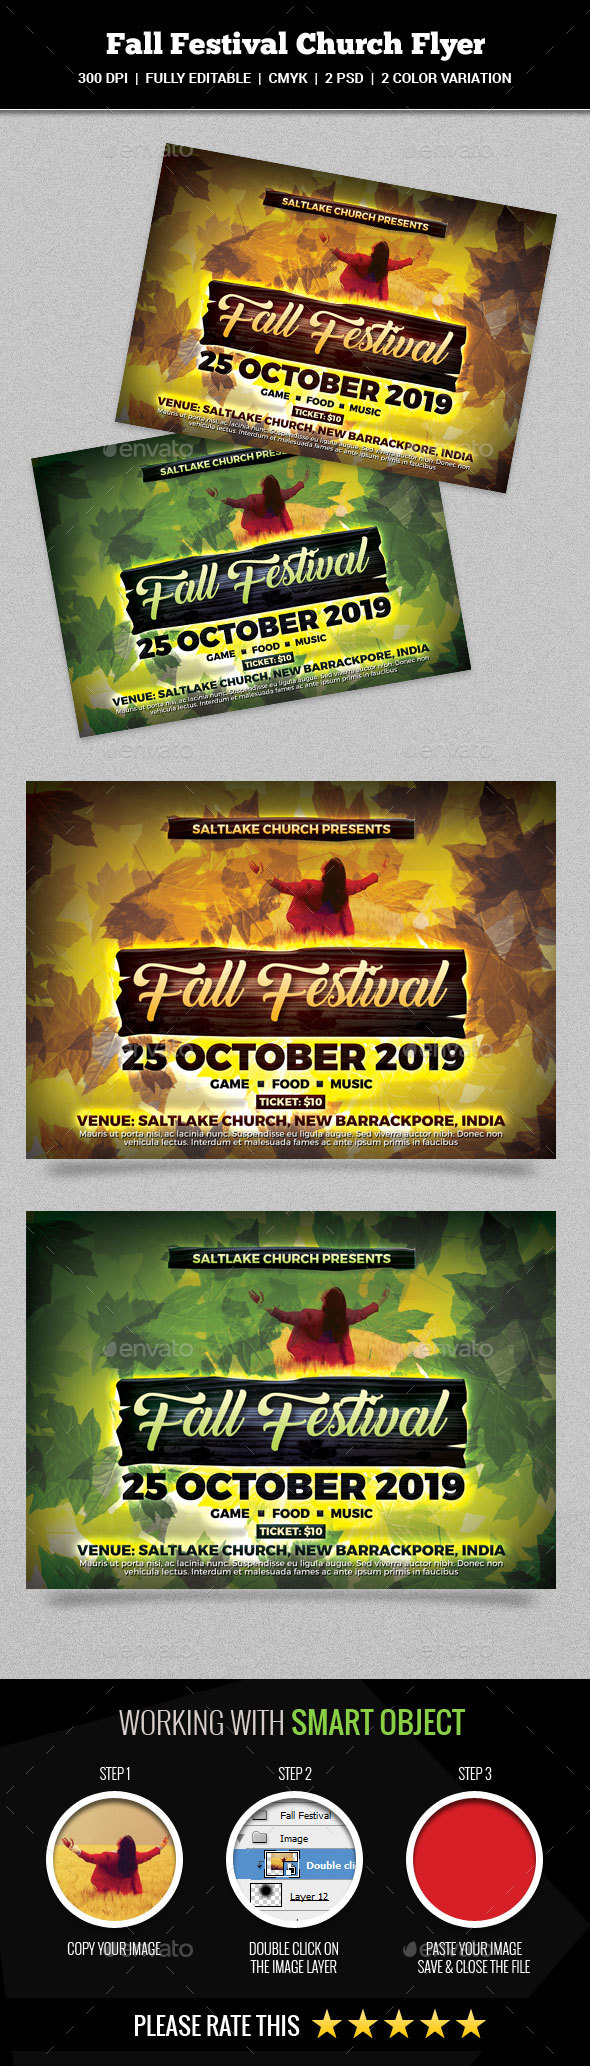 Fall Festival Church Flyer - Church Flyers